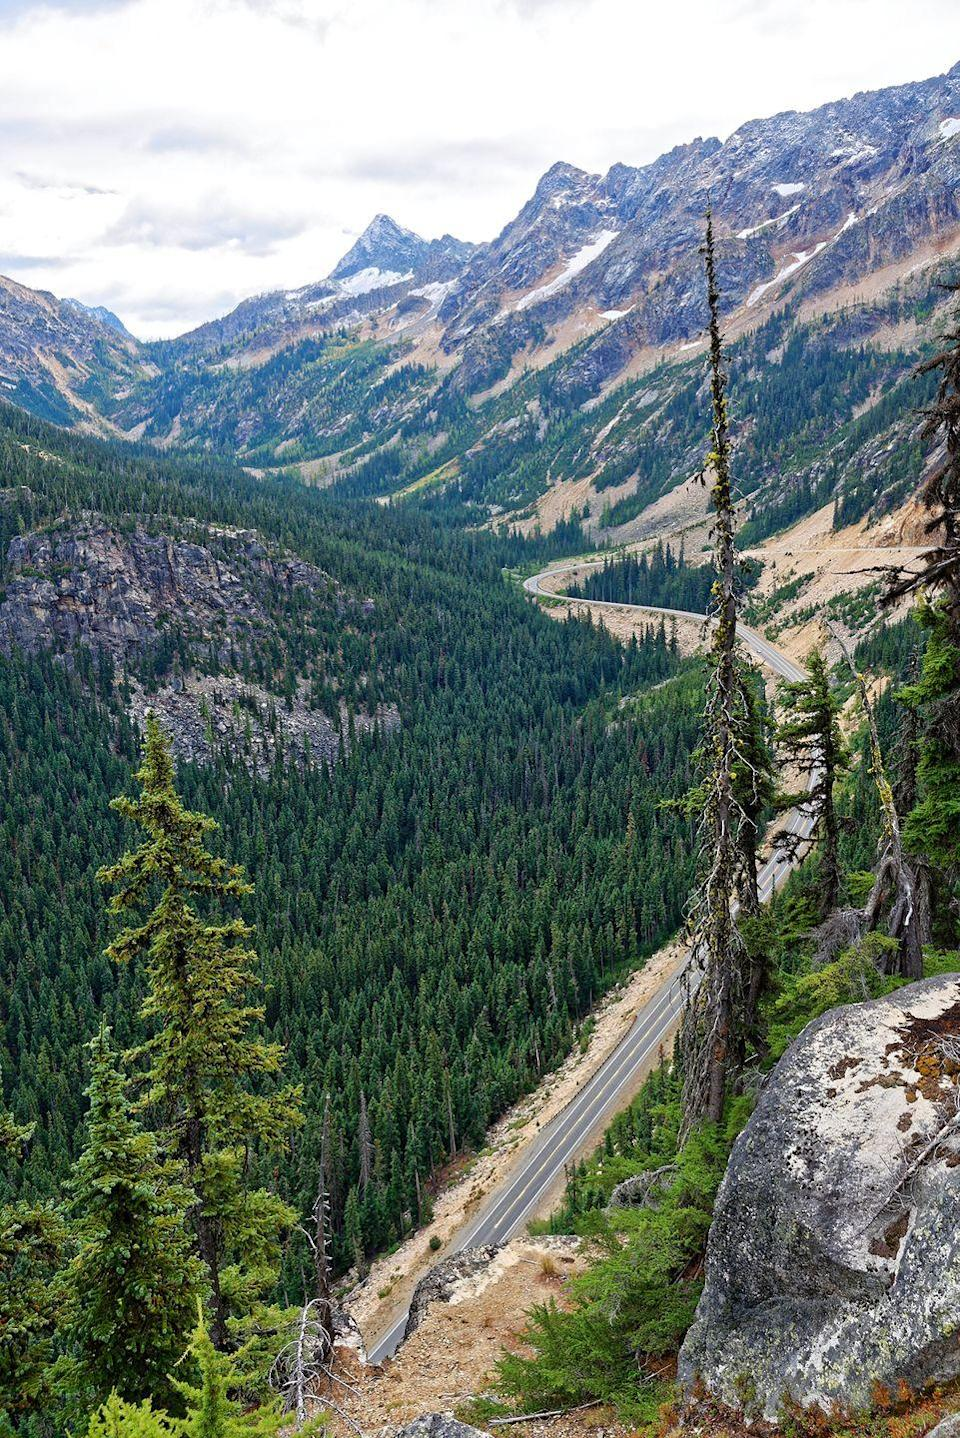 """<p><strong>The Drive:</strong> <a href=""""https://www.tripadvisor.com/Attraction_Review-g28968-d145628-Reviews-Cascade_Loop-Washington.html"""" rel=""""nofollow noopener"""" target=""""_blank"""" data-ylk=""""slk:Cascade Loop"""" class=""""link rapid-noclick-resp"""">Cascade Loop</a></p><p><strong>The Scene:</strong> Over the course of this 440-mile loop around the state, you'll get to see the state's most beautiful rivers, mountains, parks, lakes, small towns, and cities. </p><p><strong>The Pit-Stop:</strong> Though you'll no doubt want to make several stops on this journey, <a href=""""https://www.tripadvisor.com/Tourism-g58560-Leavenworth_Washington-Vacations.html"""" rel=""""nofollow noopener"""" target=""""_blank"""" data-ylk=""""slk:Leavenworth, Washington"""" class=""""link rapid-noclick-resp"""">Leavenworth, Washington</a>, should be at the top of your list. This small town is packed with Bavarian-style architecture and fun activities—especially during Oktoberfest. </p>"""